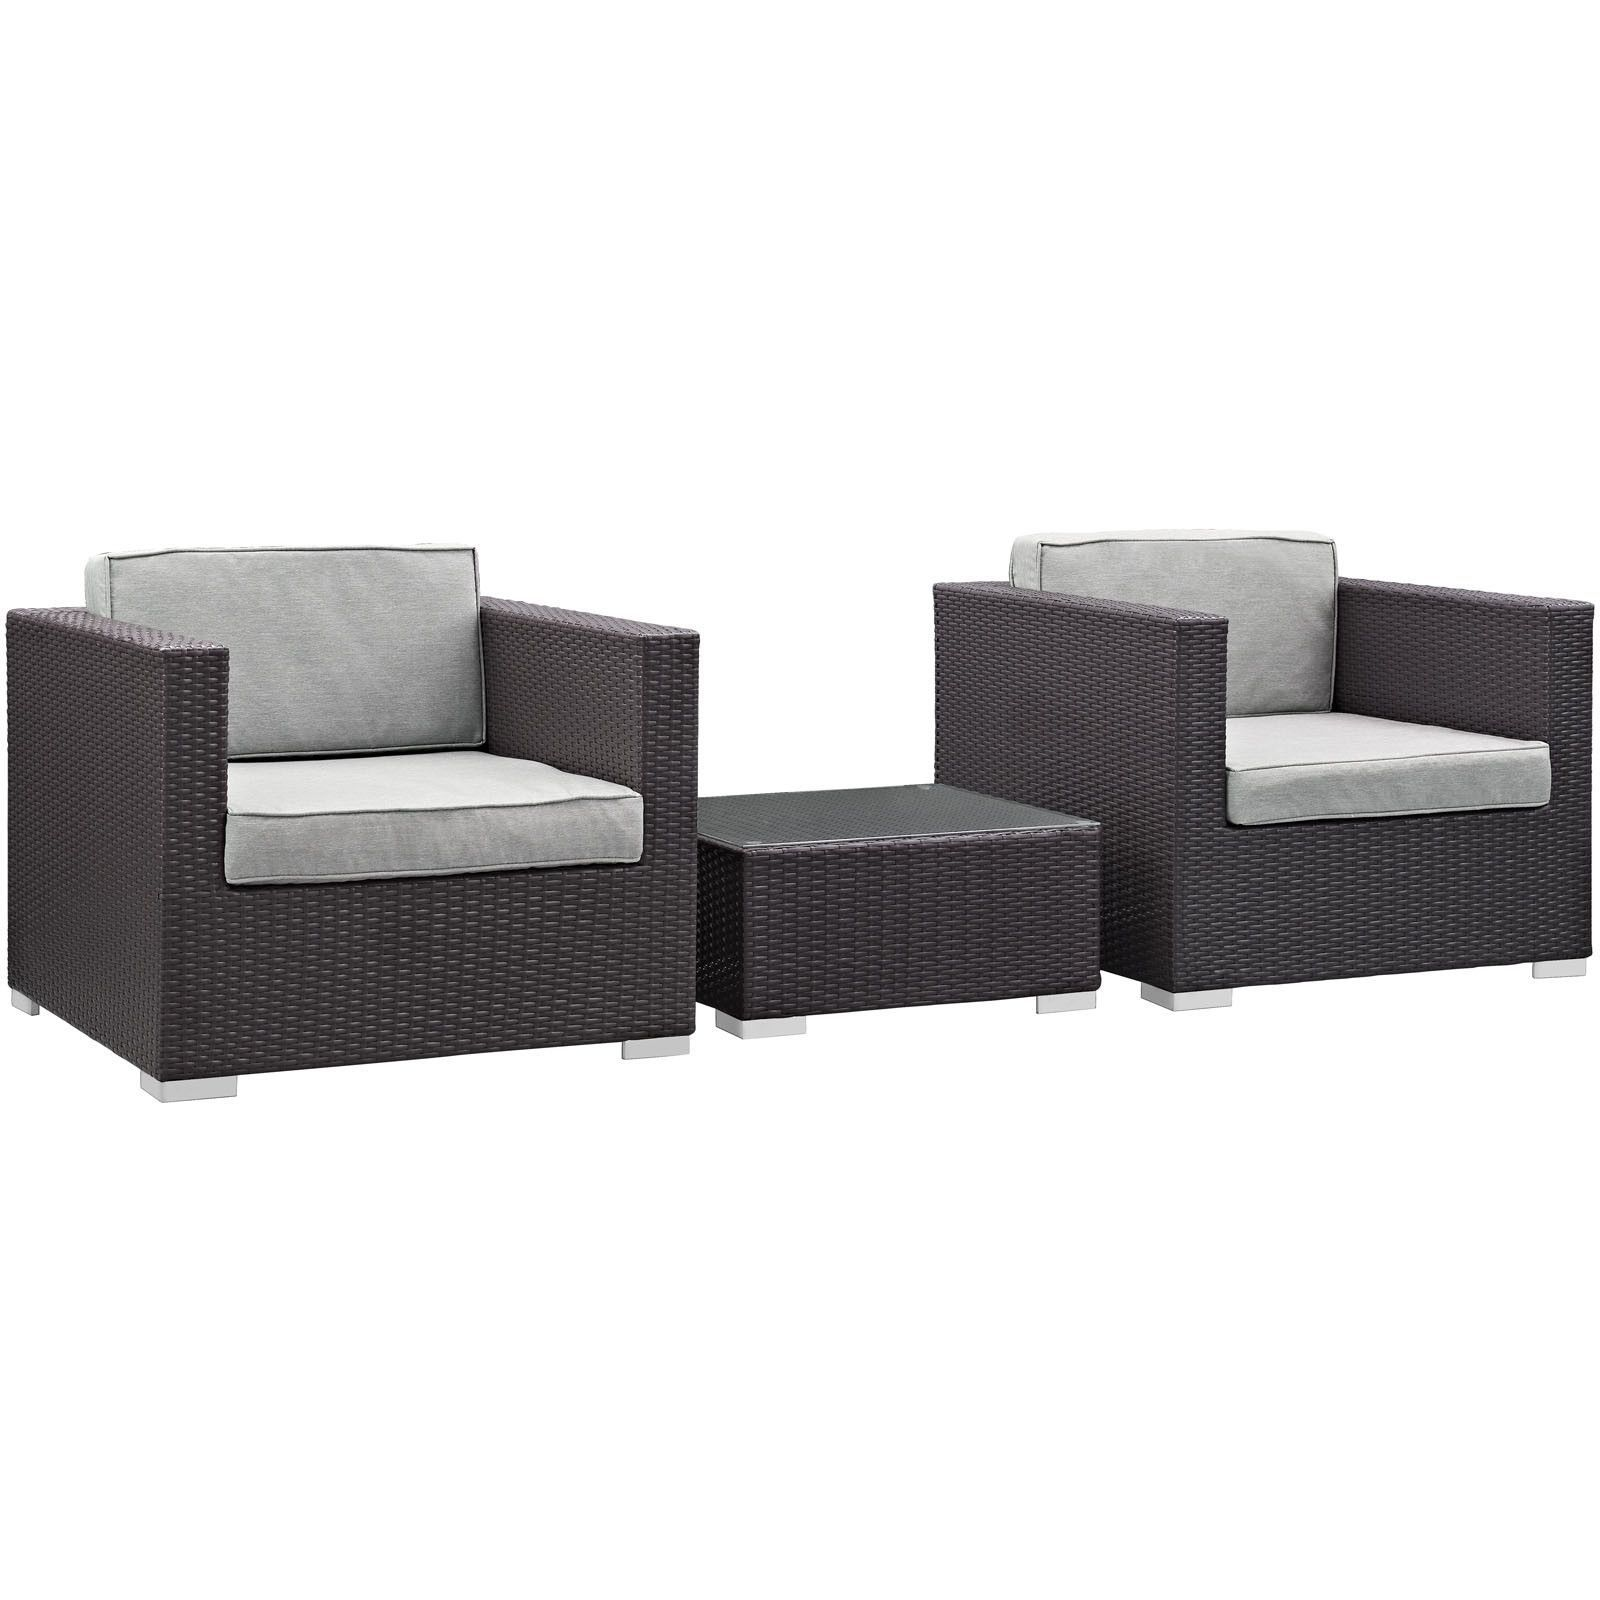 Burrow 3 Piece Modern Outdoor Patio Sofa Set